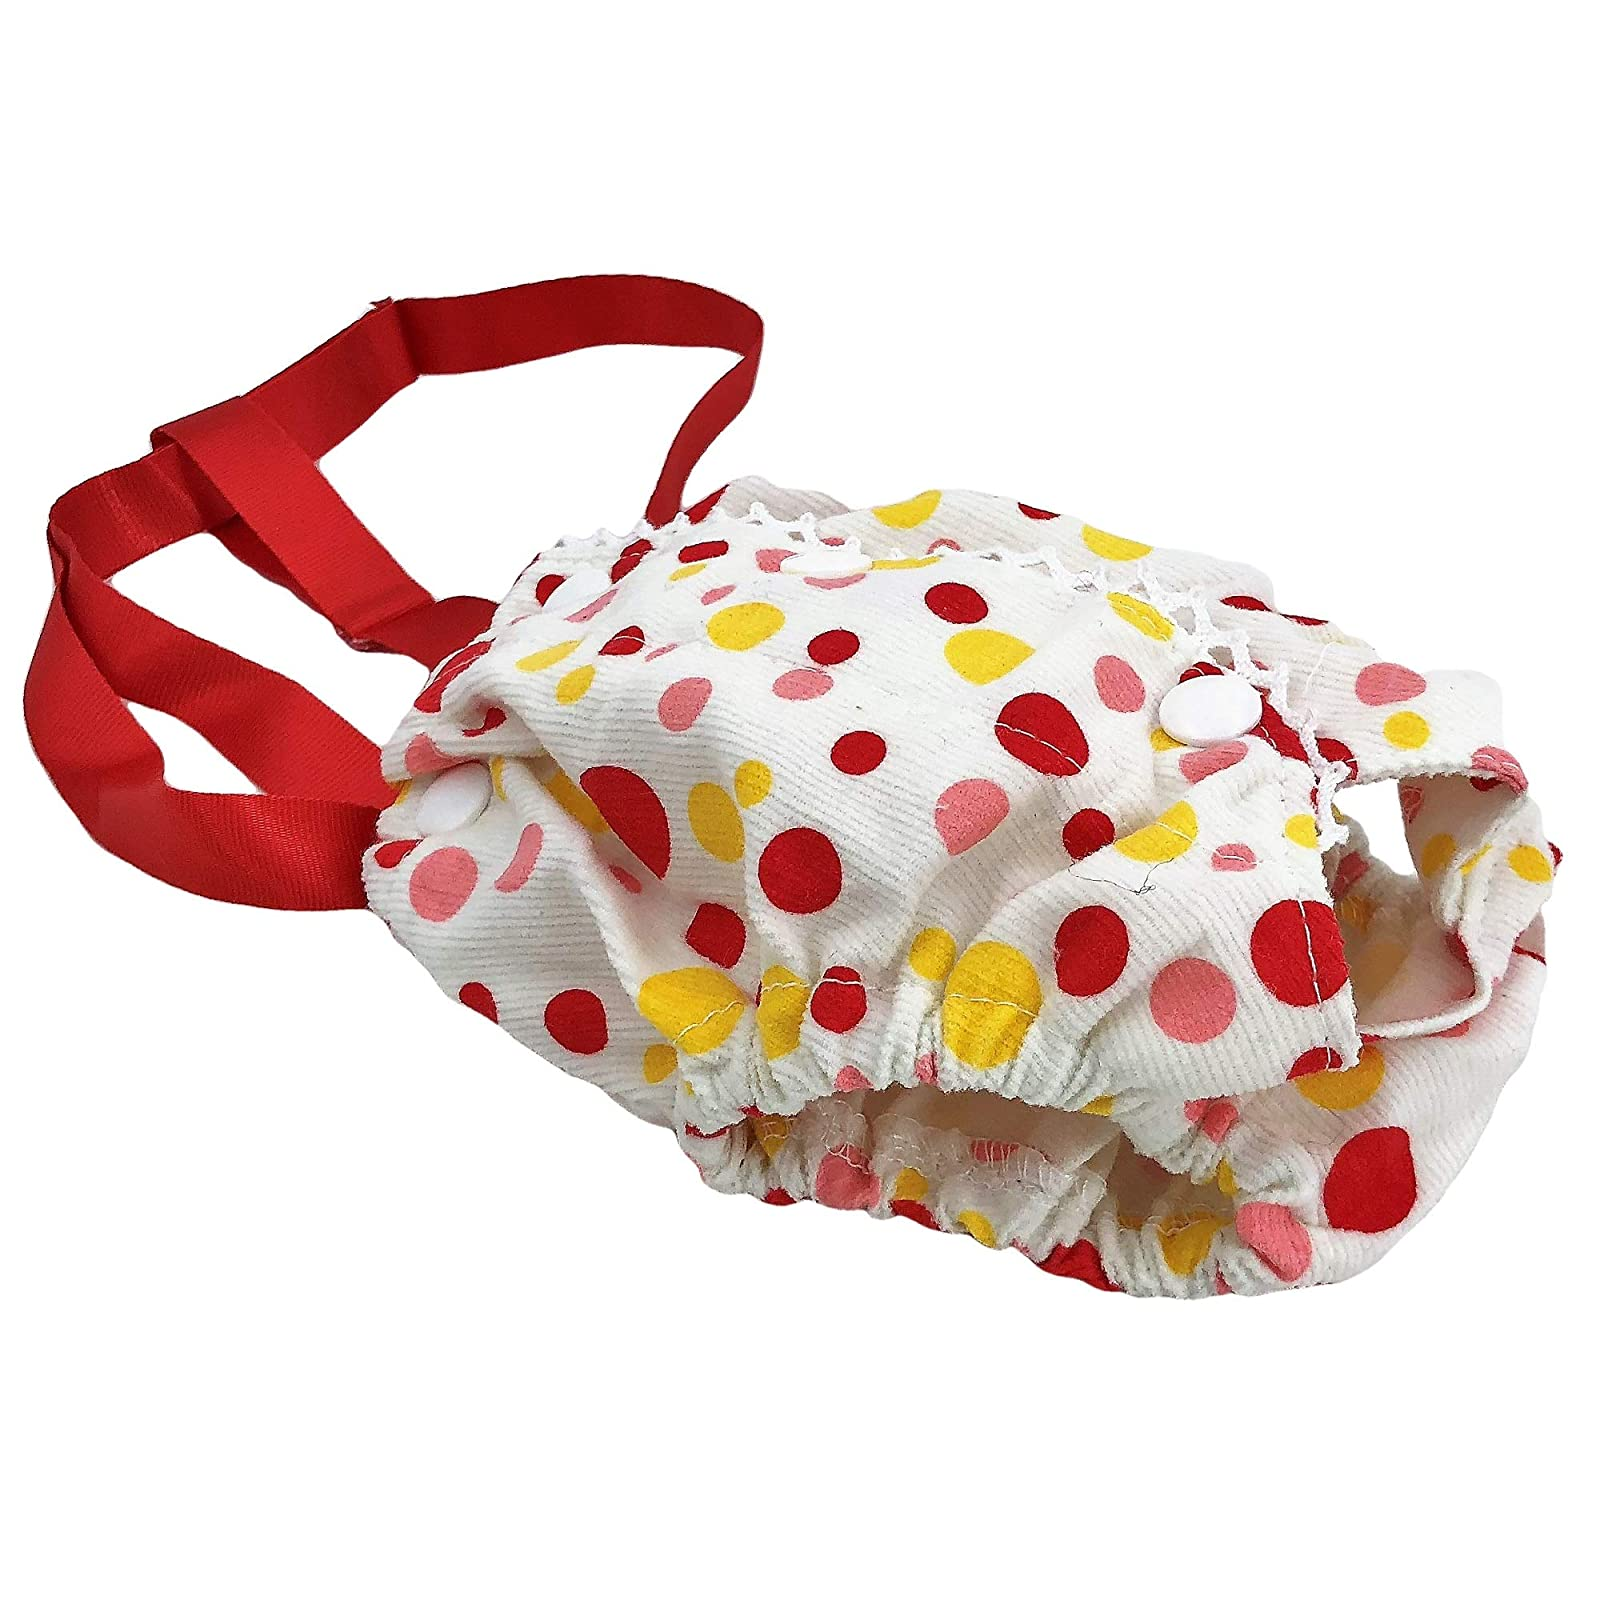 FunnyDogClothes Female Dog Diaper With Suspenders COTTON - 3